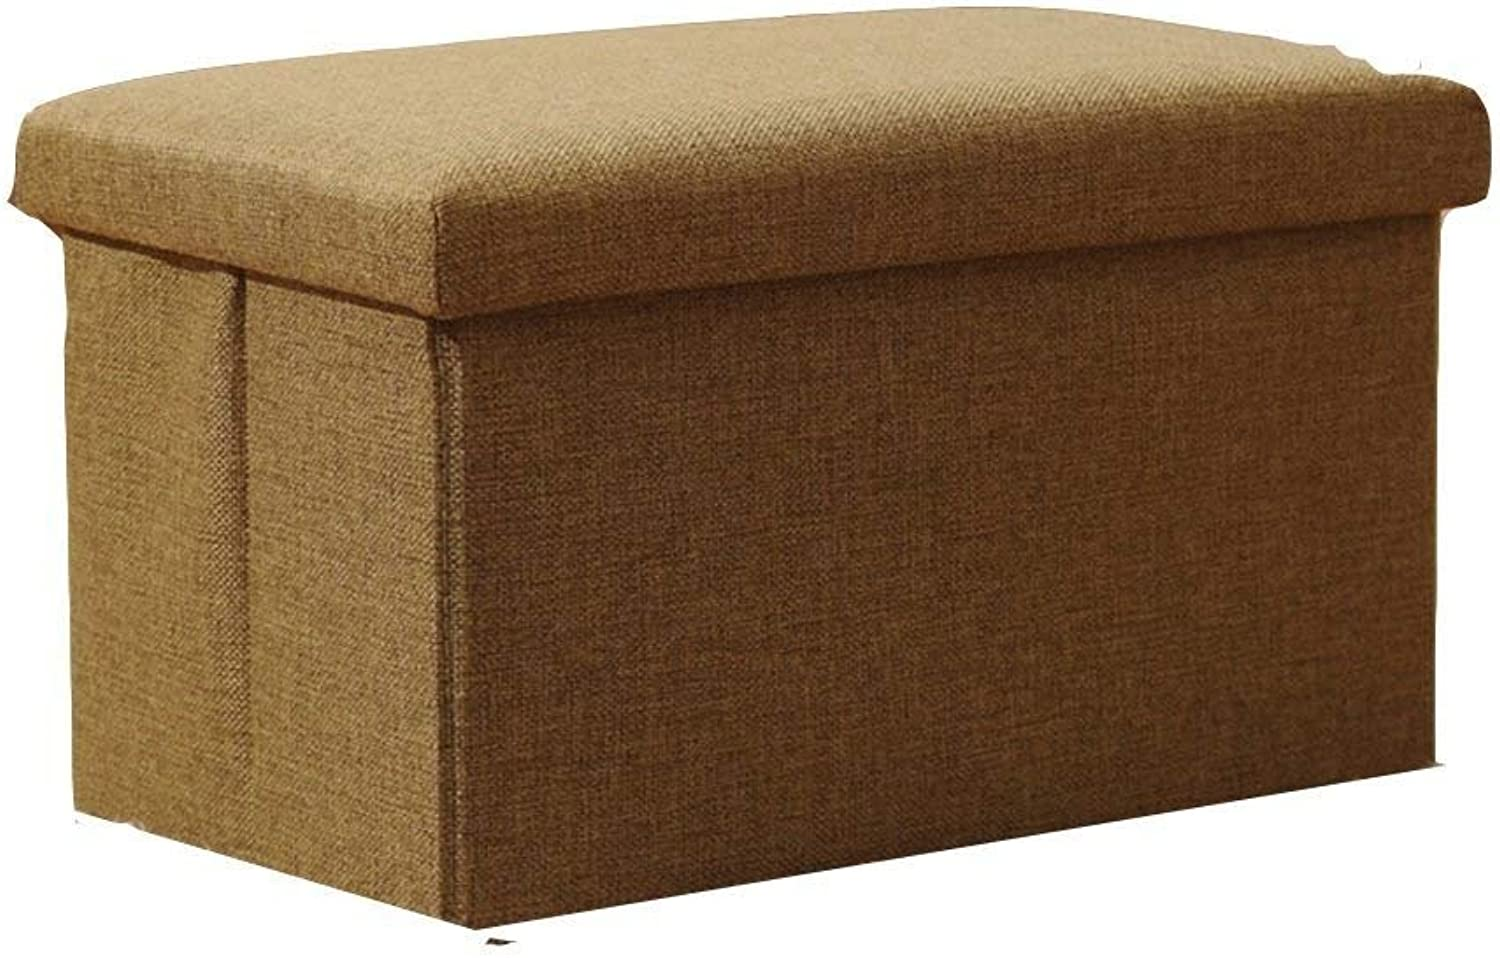 SED Sofa Stool- Storage Stool Storage Stool can sit a Small Stool Folding Multifunctional Stool (4 colors Optional) (40  25  25cm) -Storage Stool